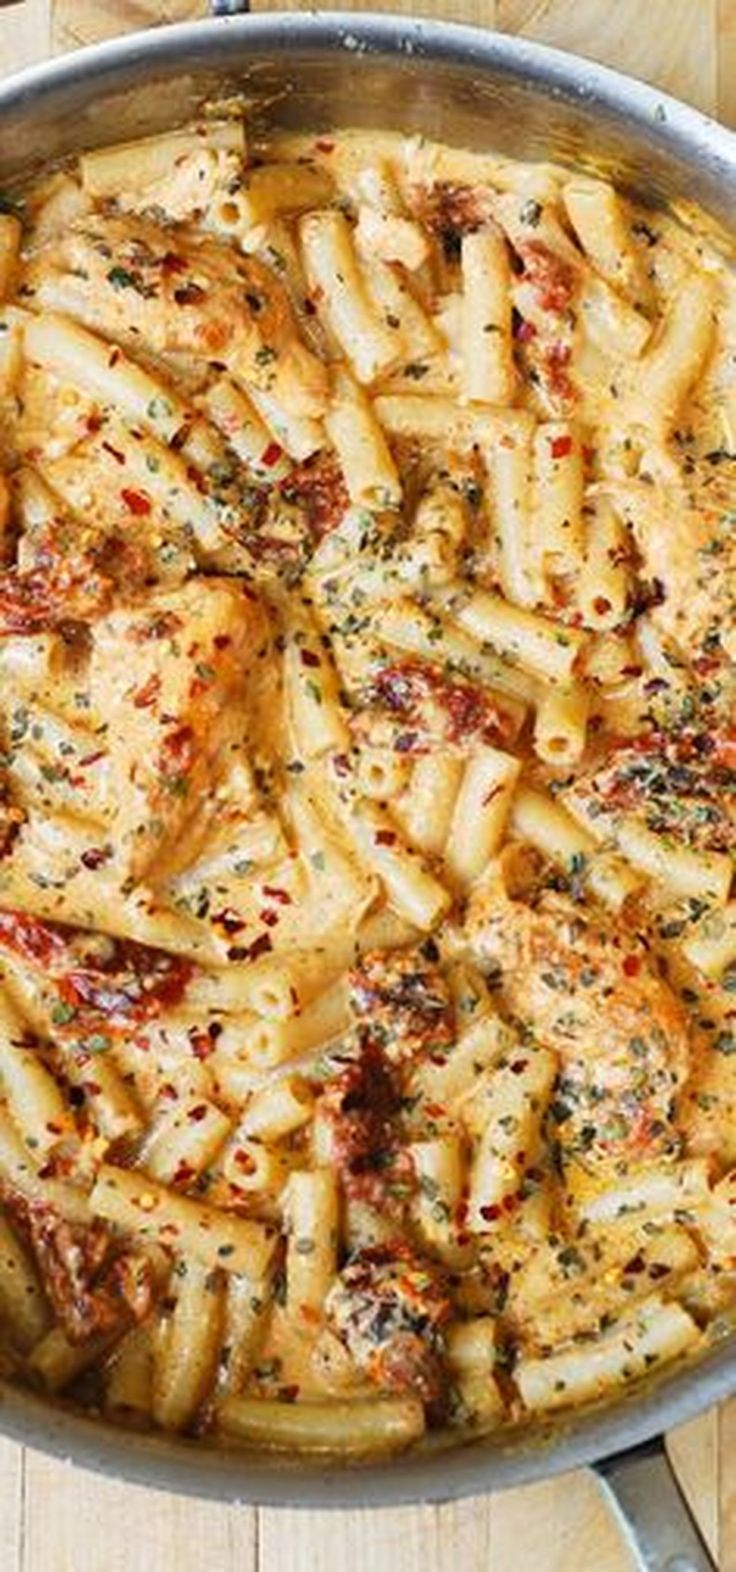 Chicken Mozzarella Pasta with Sun Dried Tomatoes - (Free Recipe below)